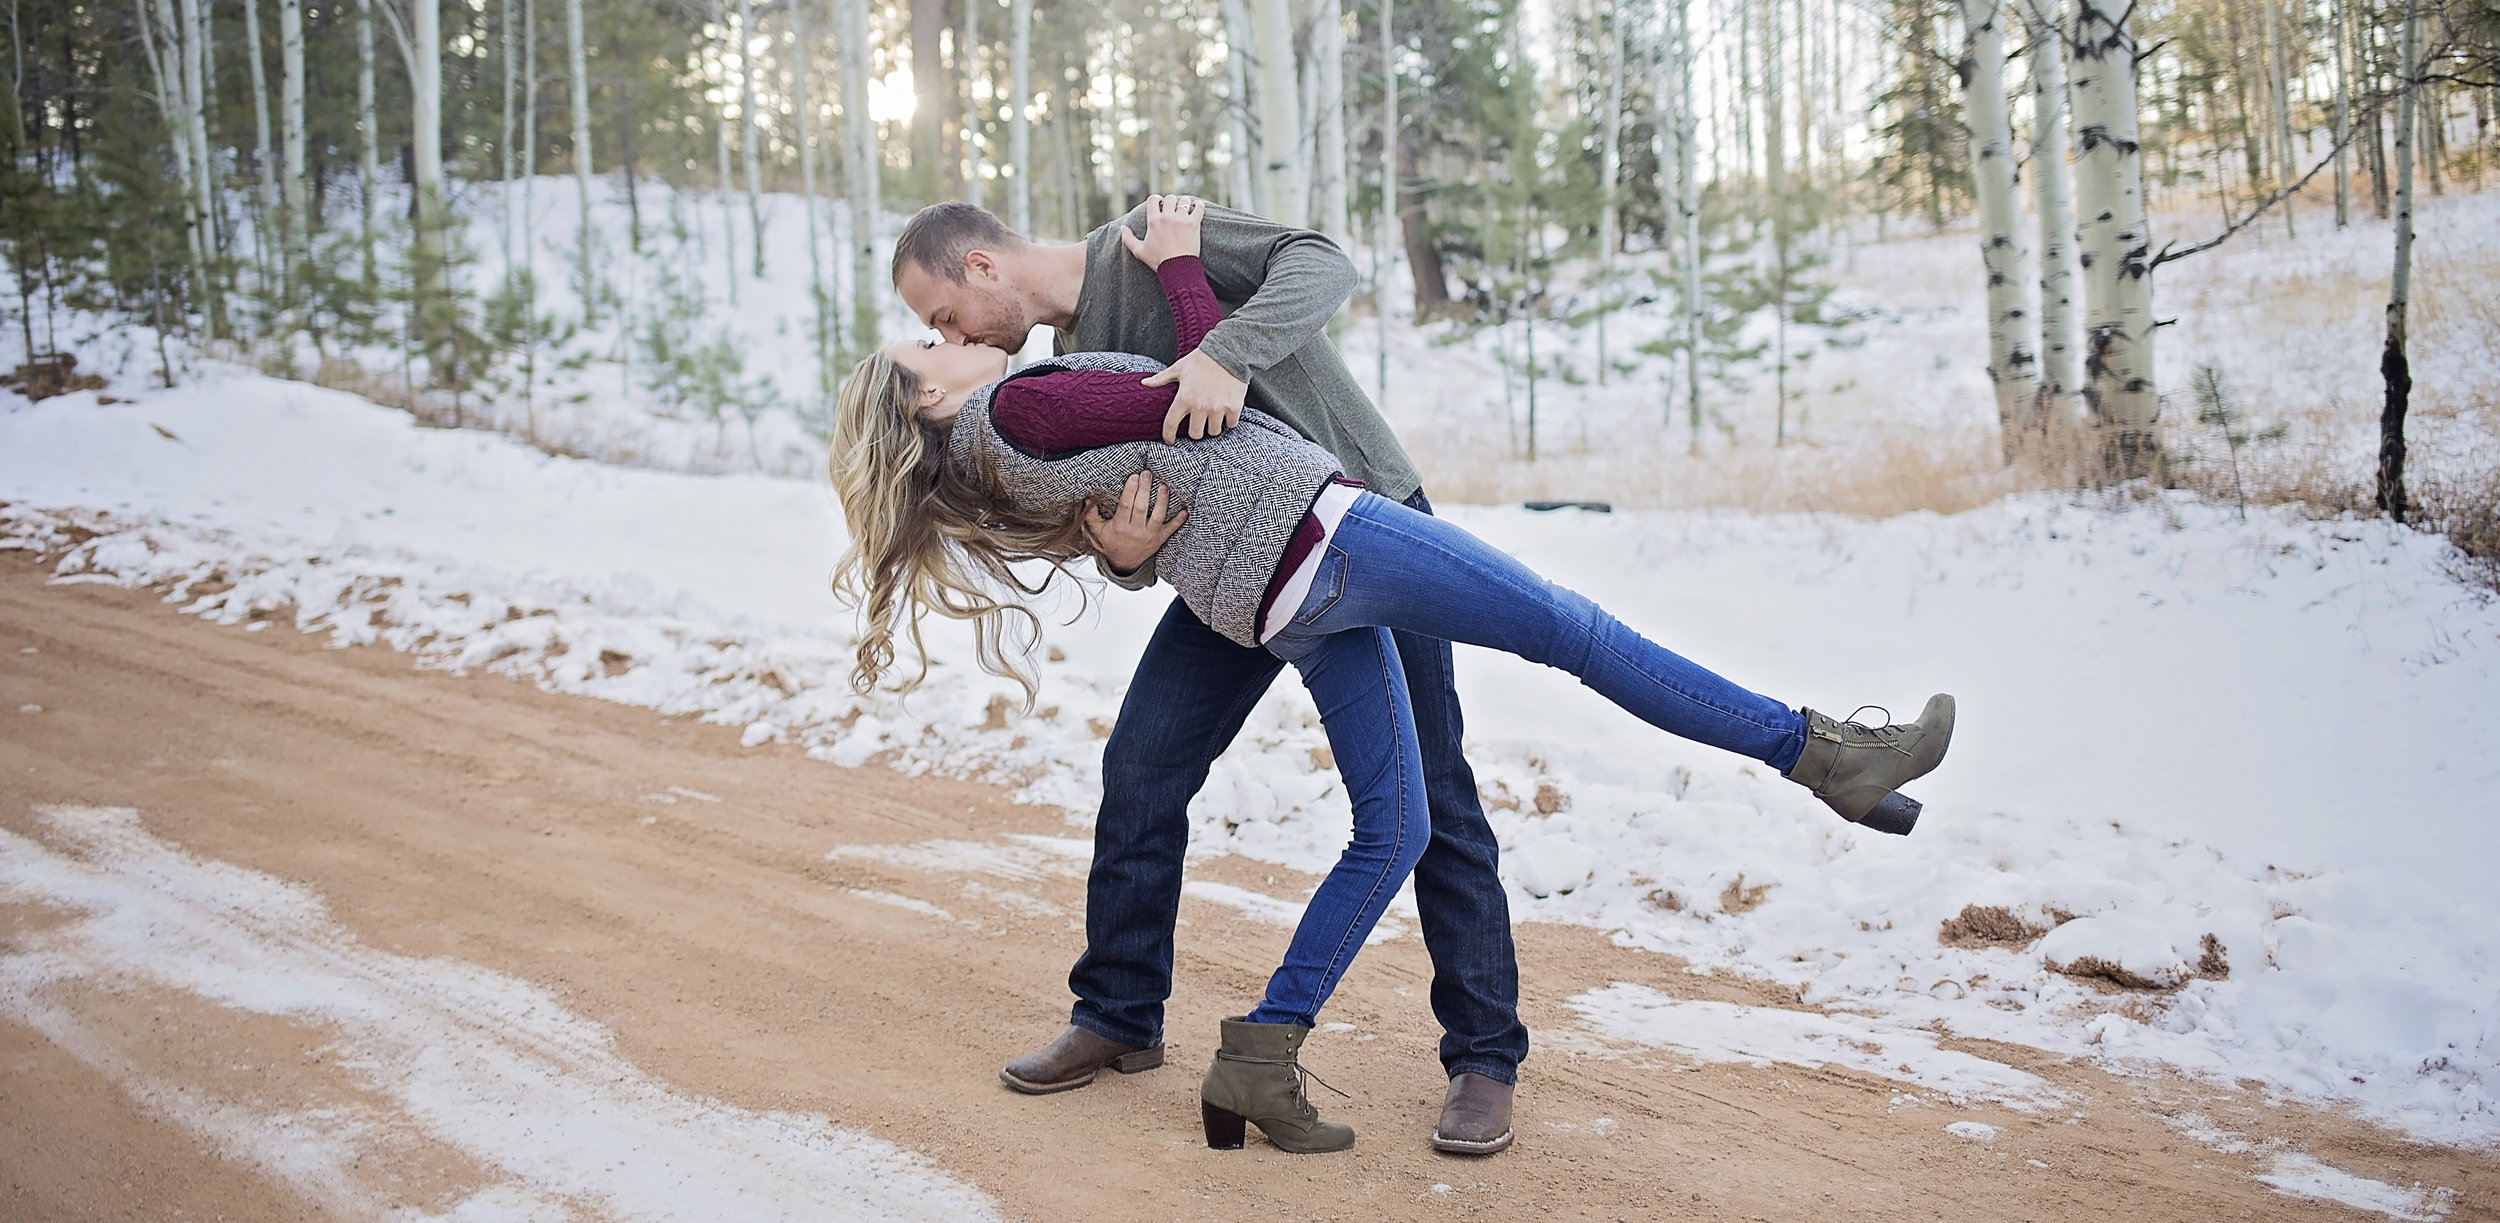 Snowy Colorado Engagement Photo Session